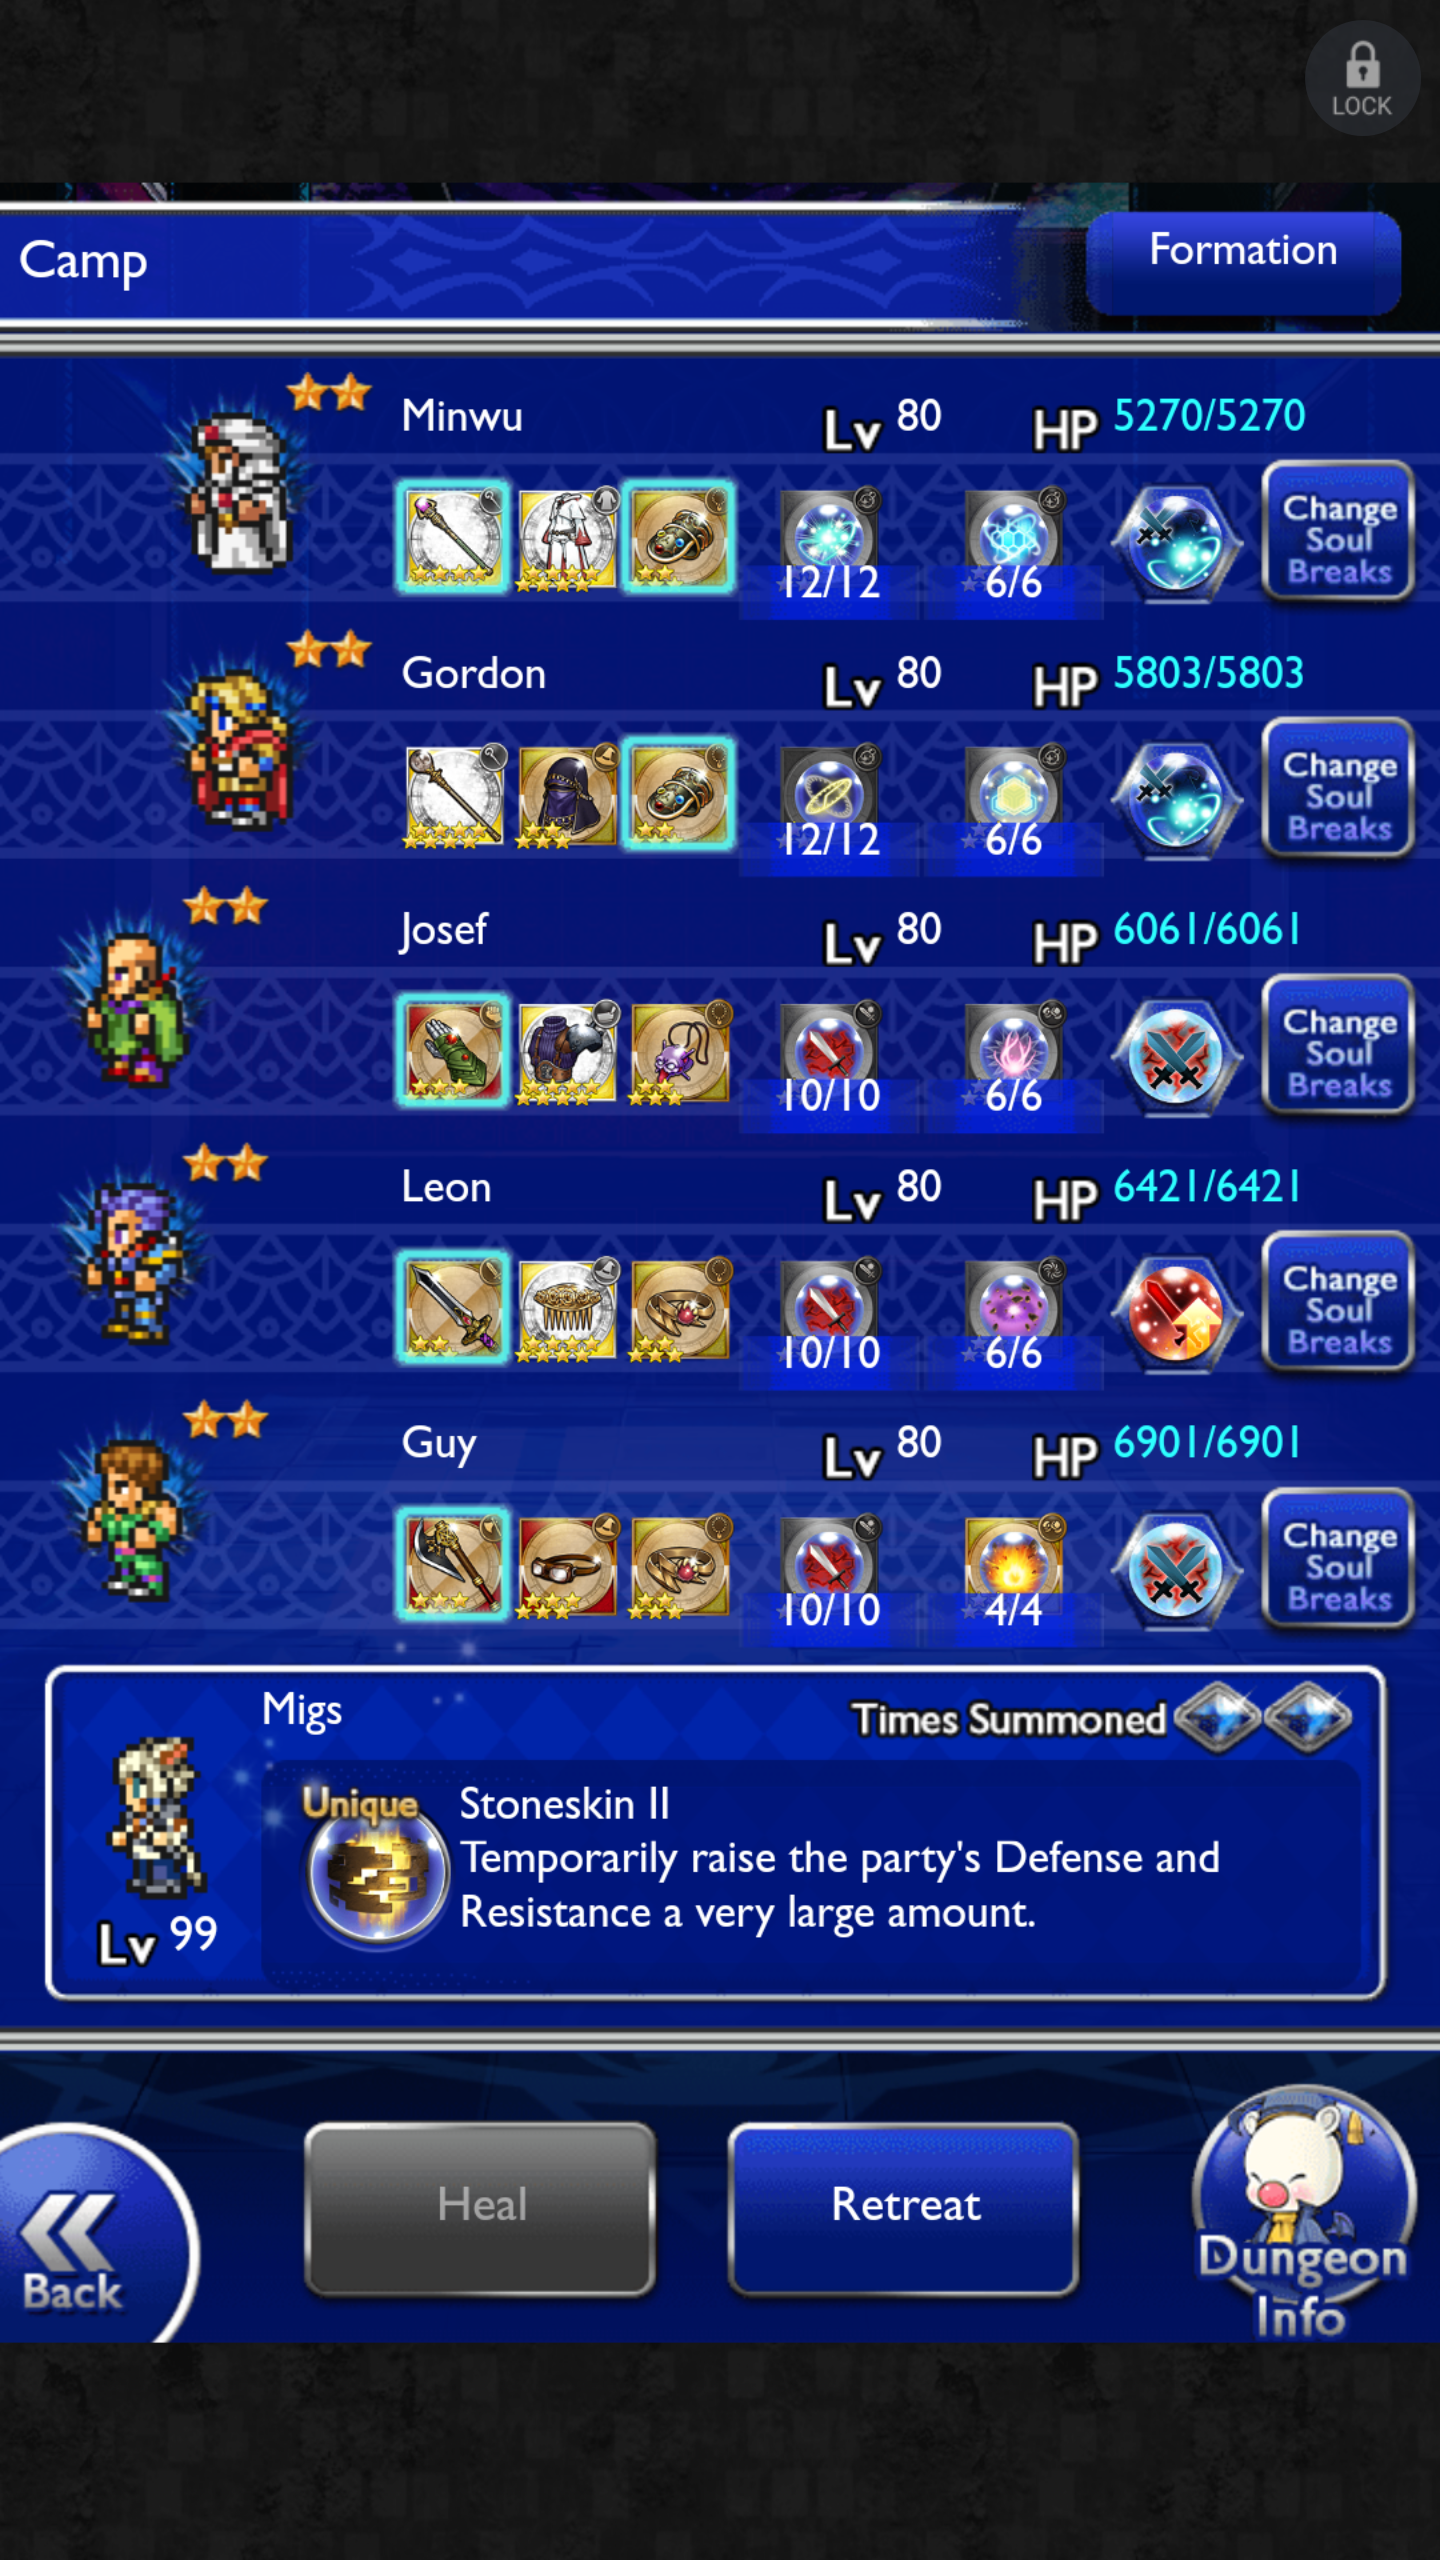 corwen games phase clearmastered incubus quake stupid plain edition again dungeons torment thought ifrit think mote ffrk